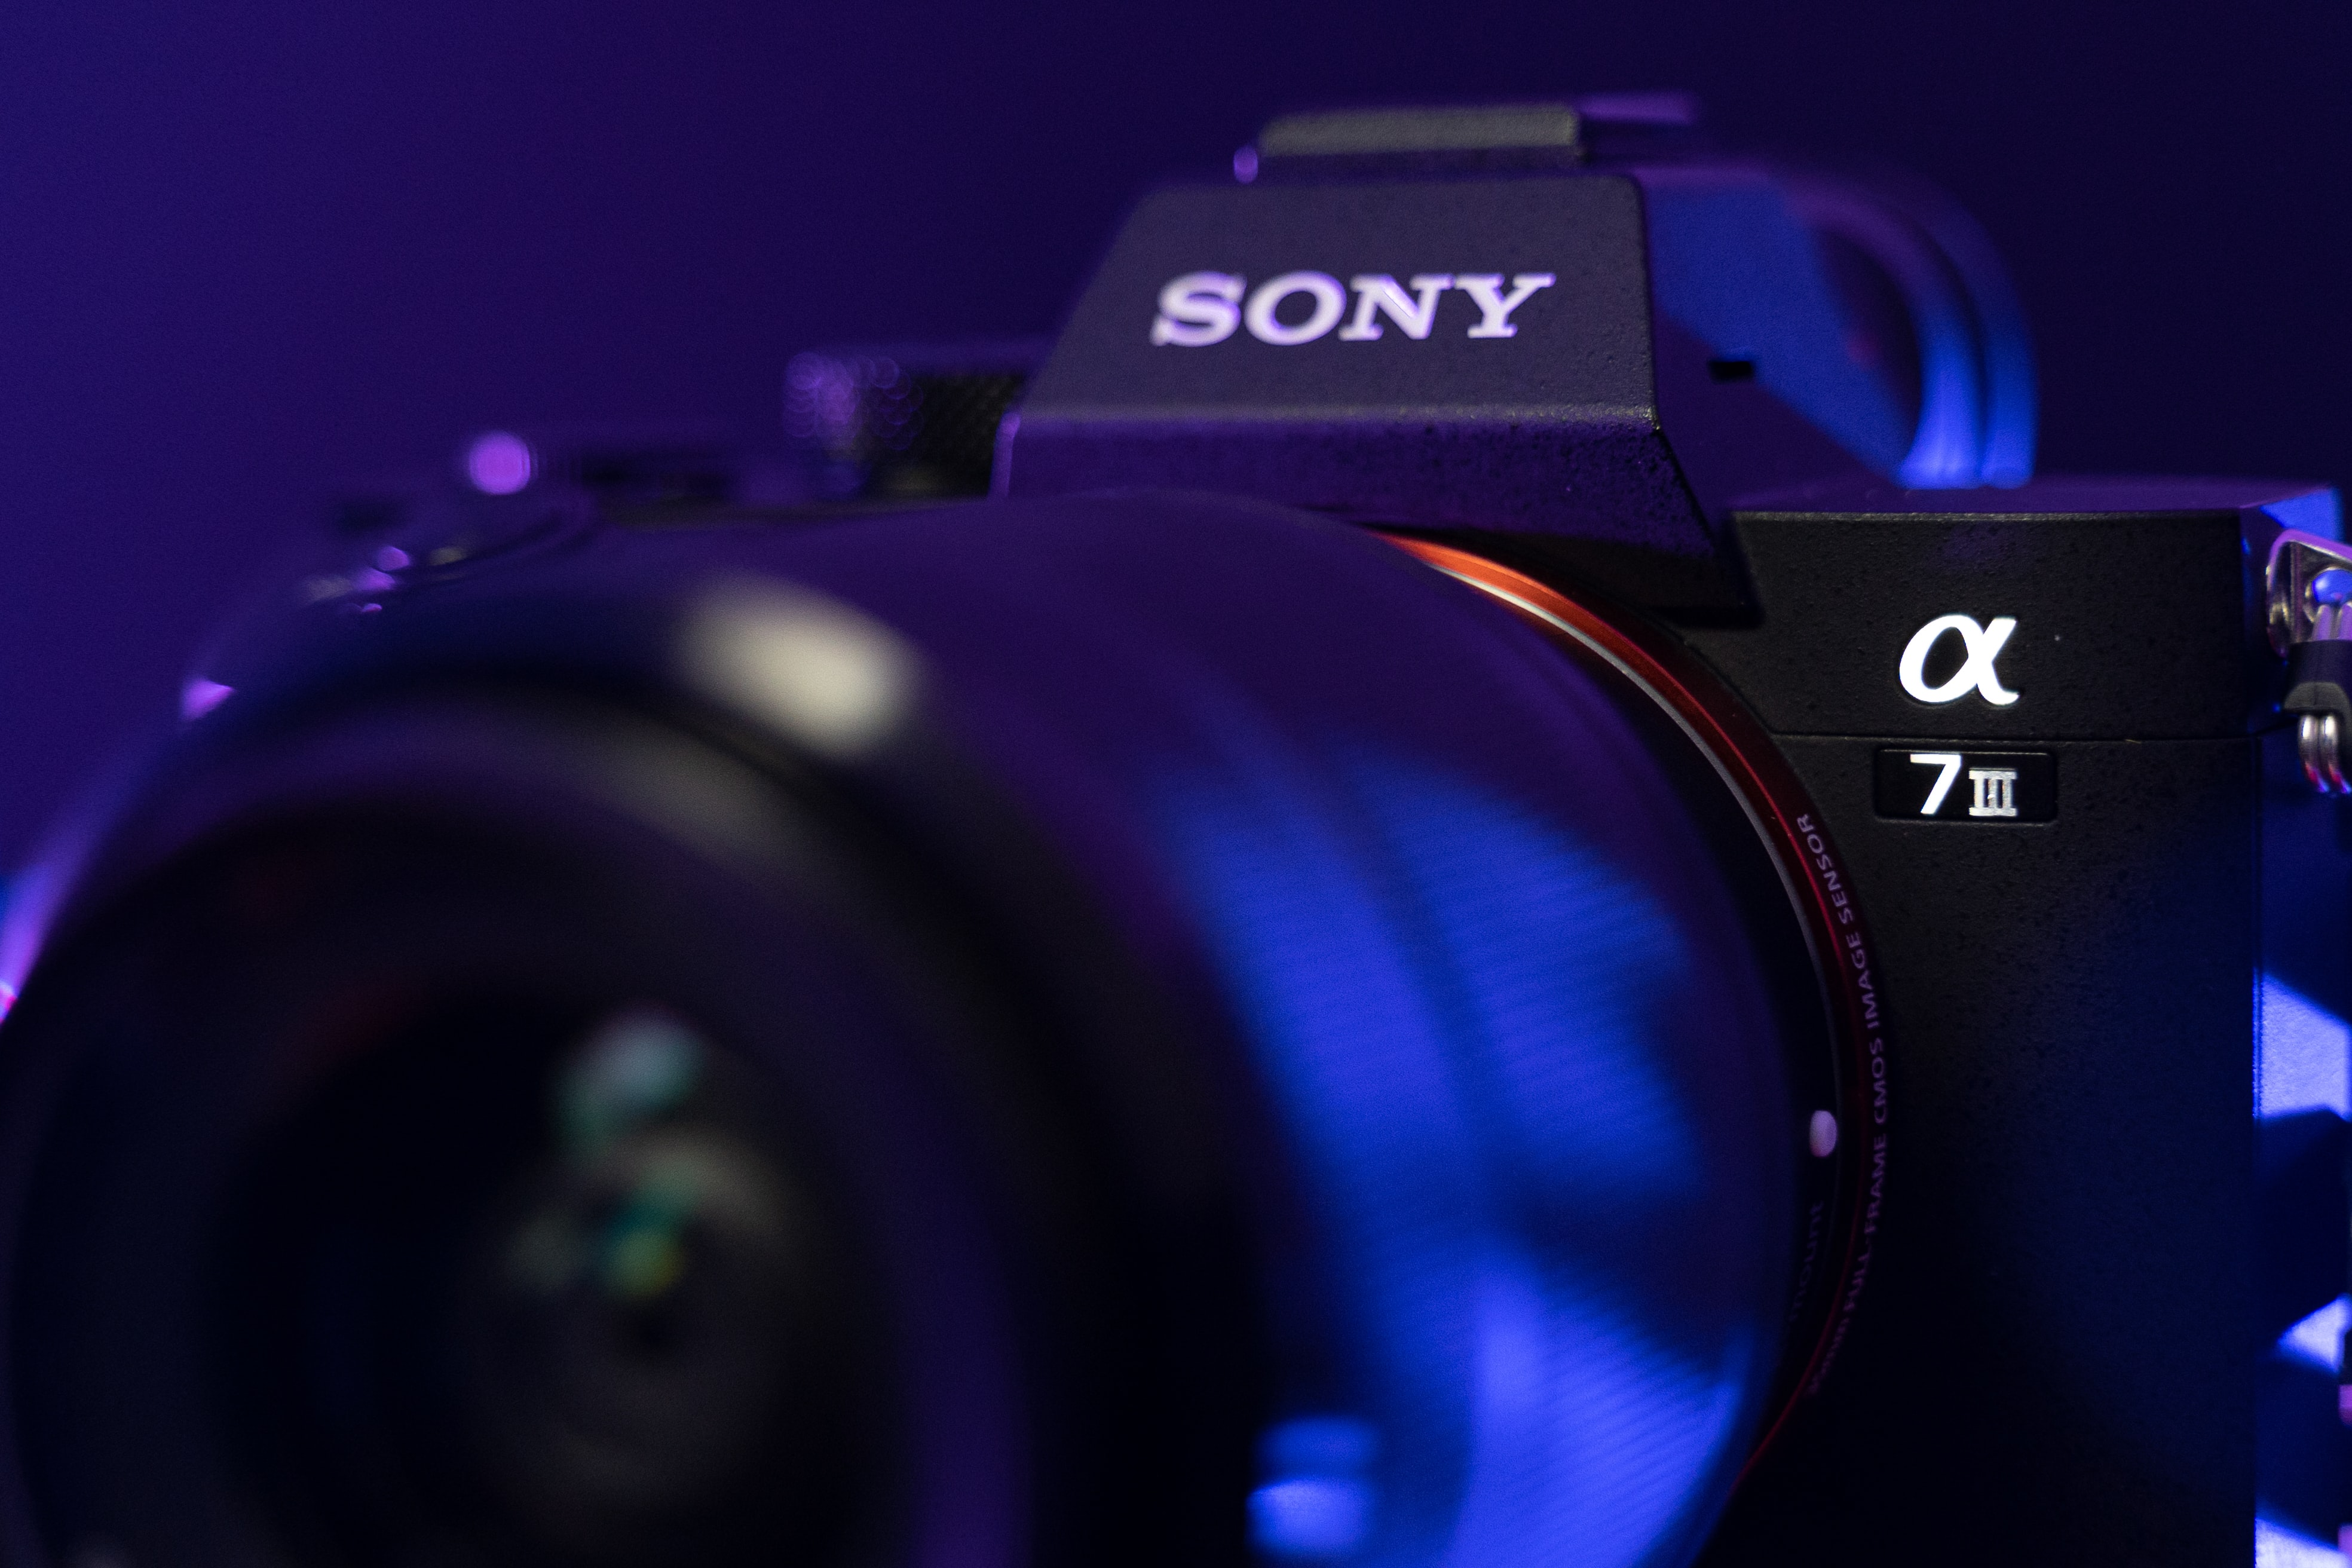 Rent the Sony Alpha 7 III camera in Berlin with Beazy, the camera sharing community